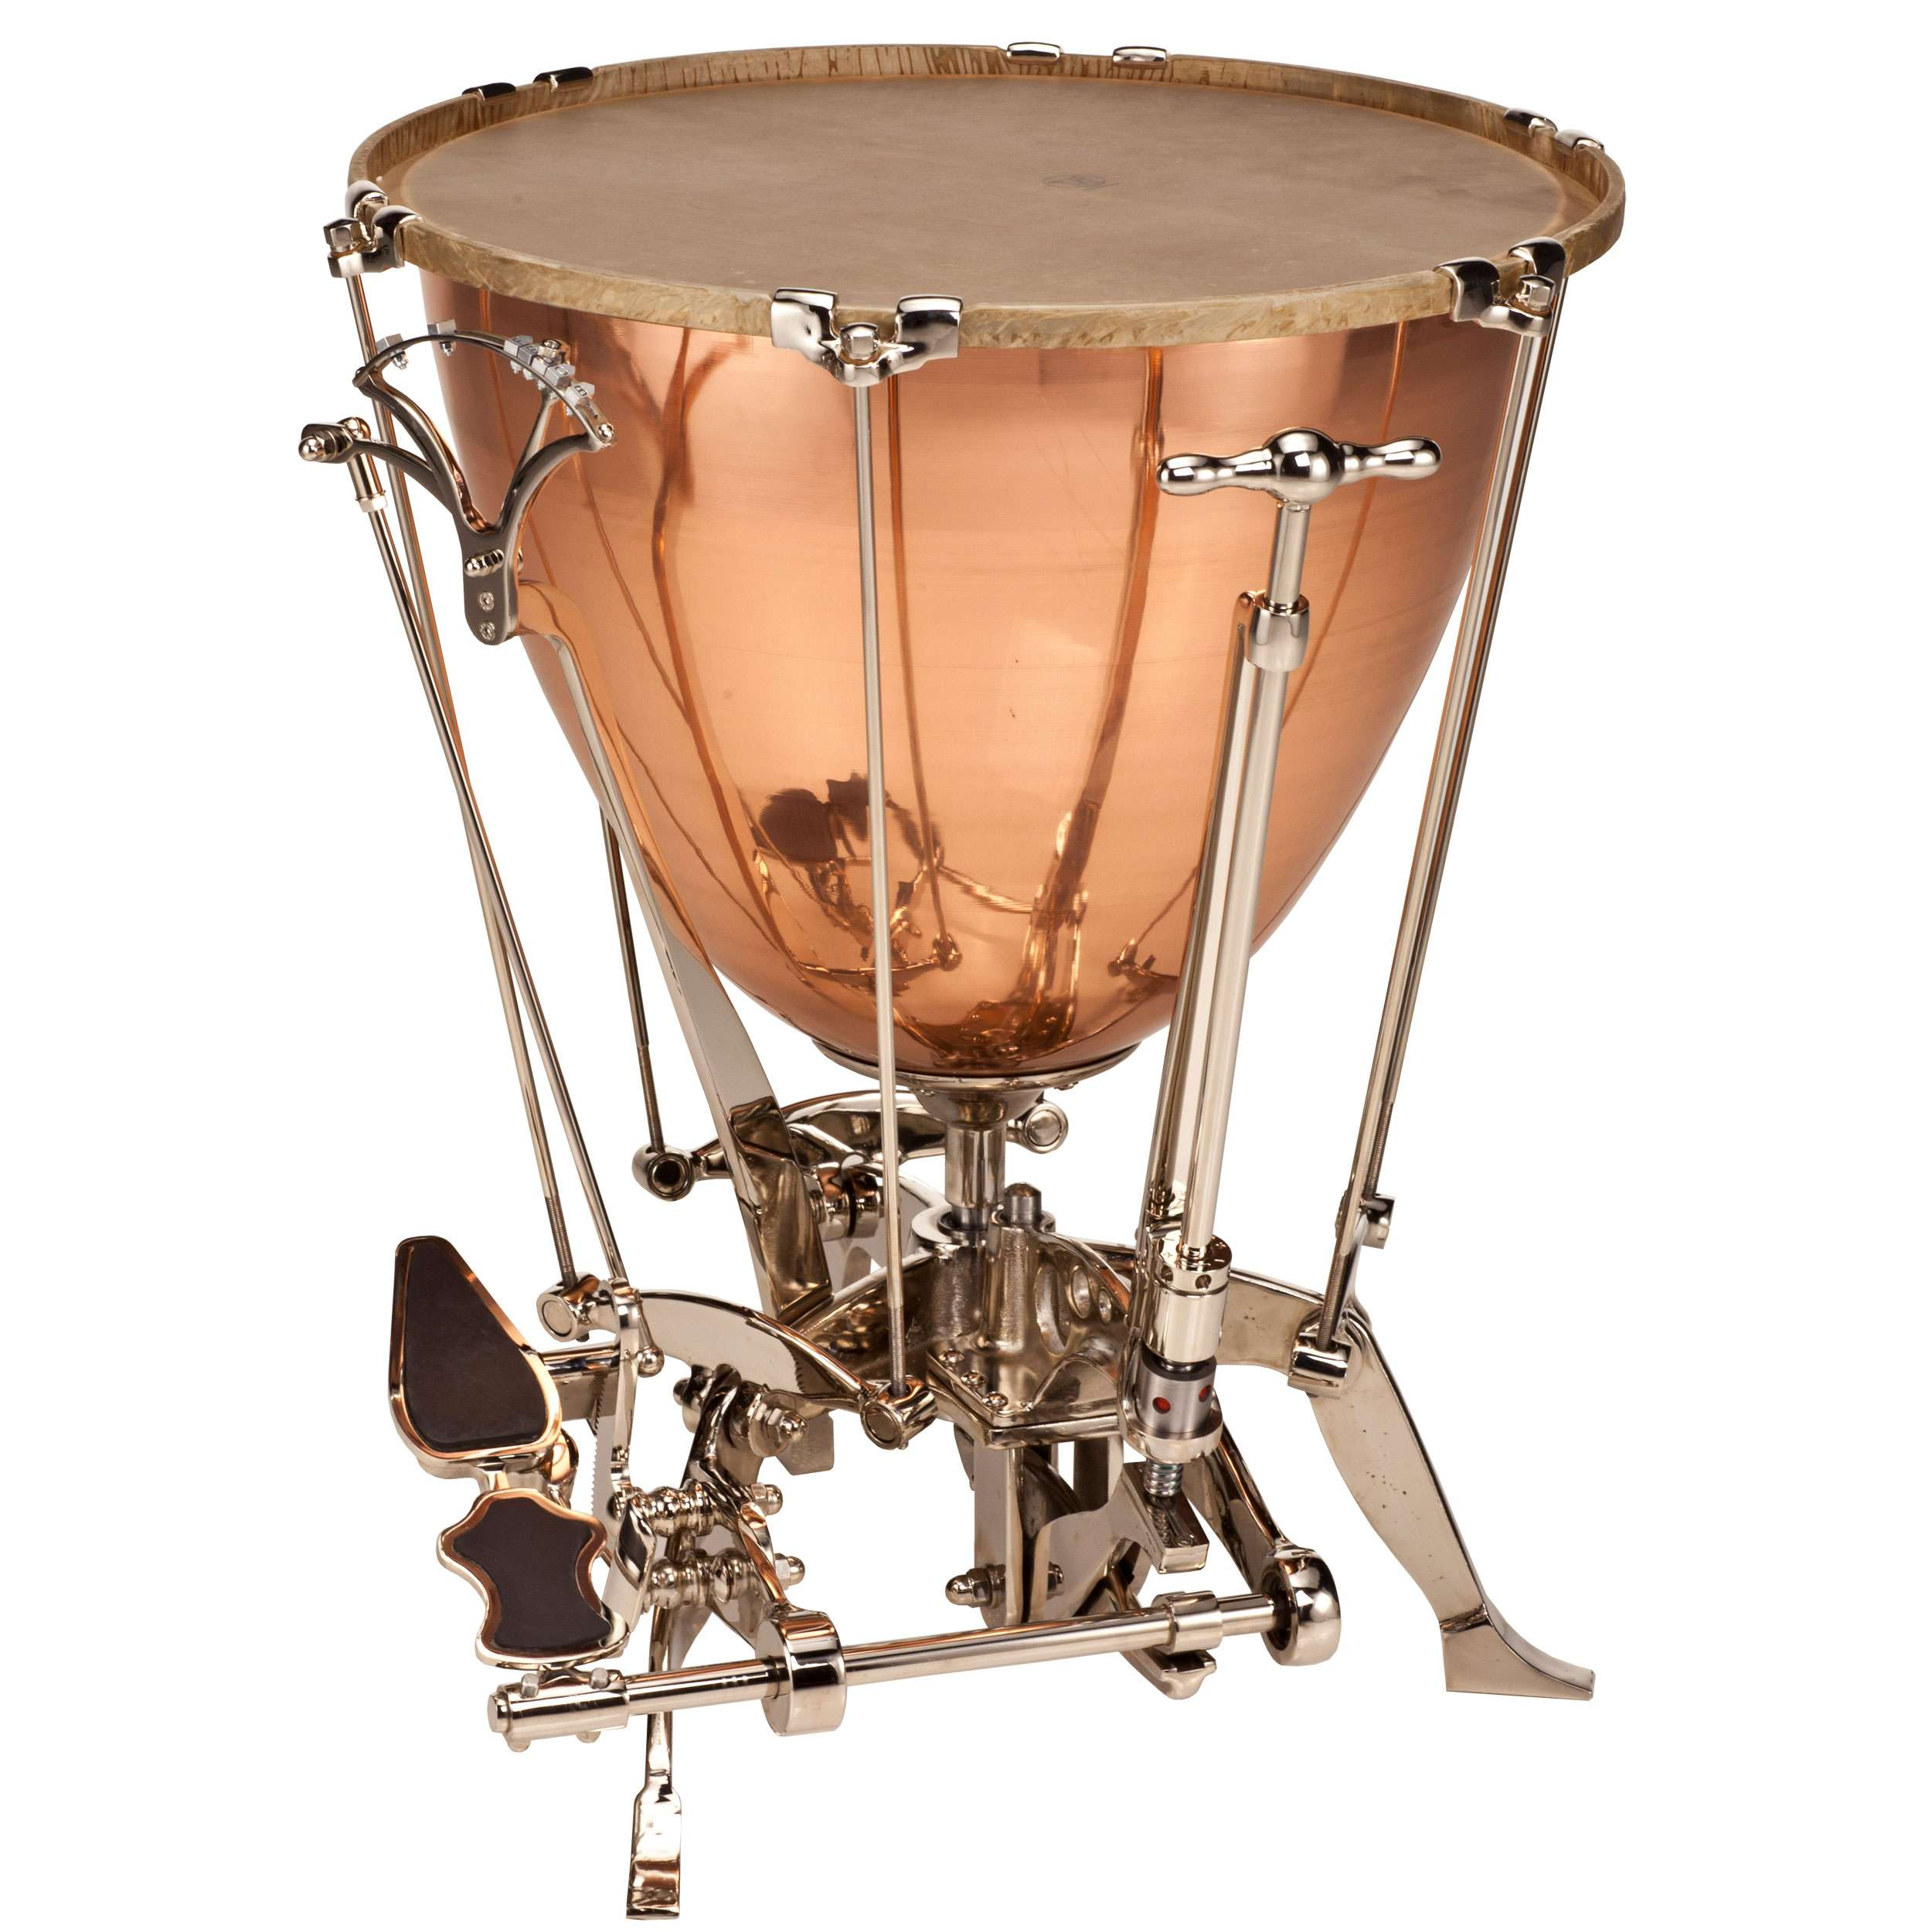 "Adams 32"" Schnellar Timpani with Kurbel (Crank) and Calfskin Head"